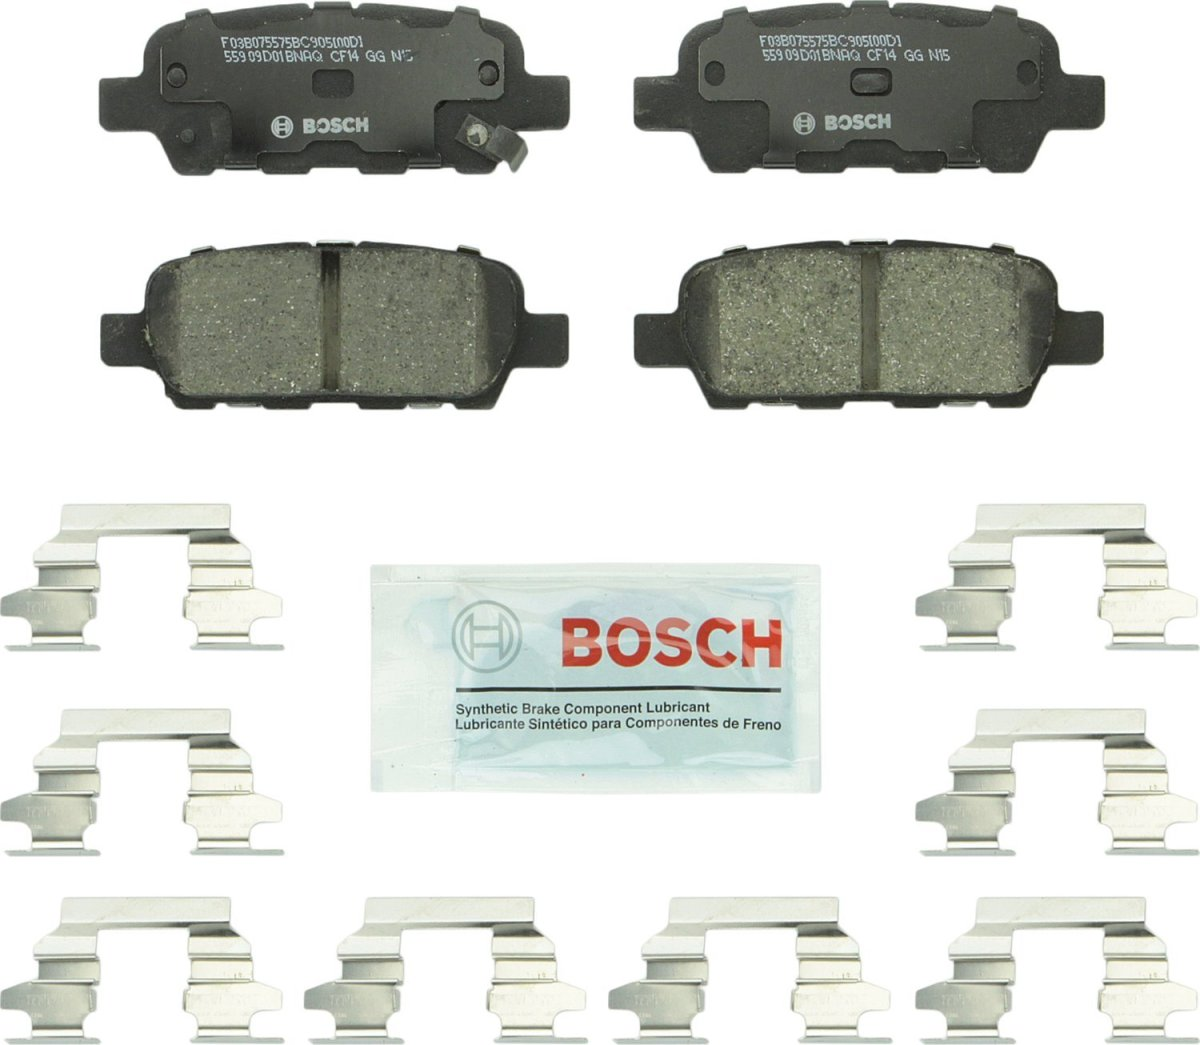 How to Double Clutch Bosch BC905 QuietCast Premium Ceramic Disc Brake Pad For: Infiniti: (EX,FX,G,JX,M,Q,QX,X); Nissan 350Z, 370Z, Altima, Juke, Leaf, Maxima, Murano, Pathfinder, Quest, Rogue, Sentra, X-Trail + More, Rear